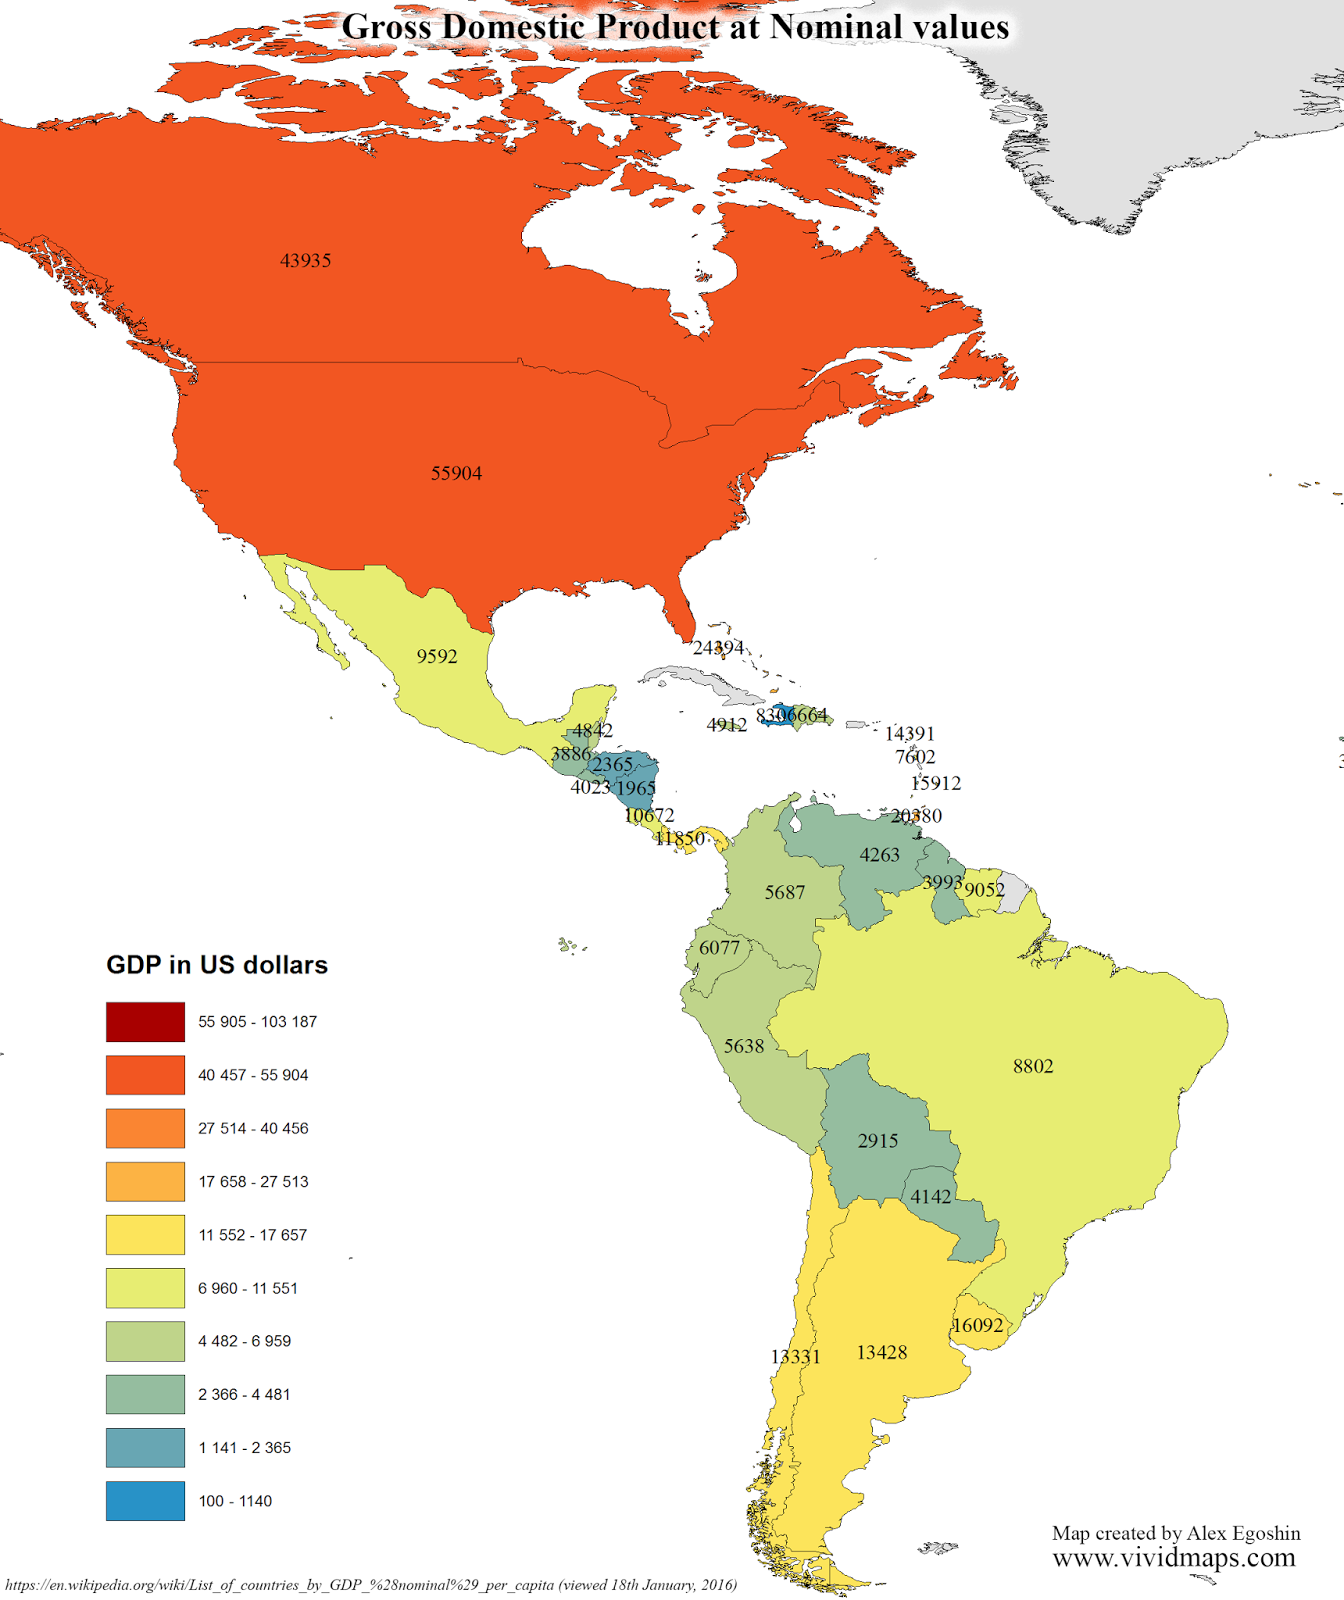 Gross Domestic Product at Nominal values (Americas)